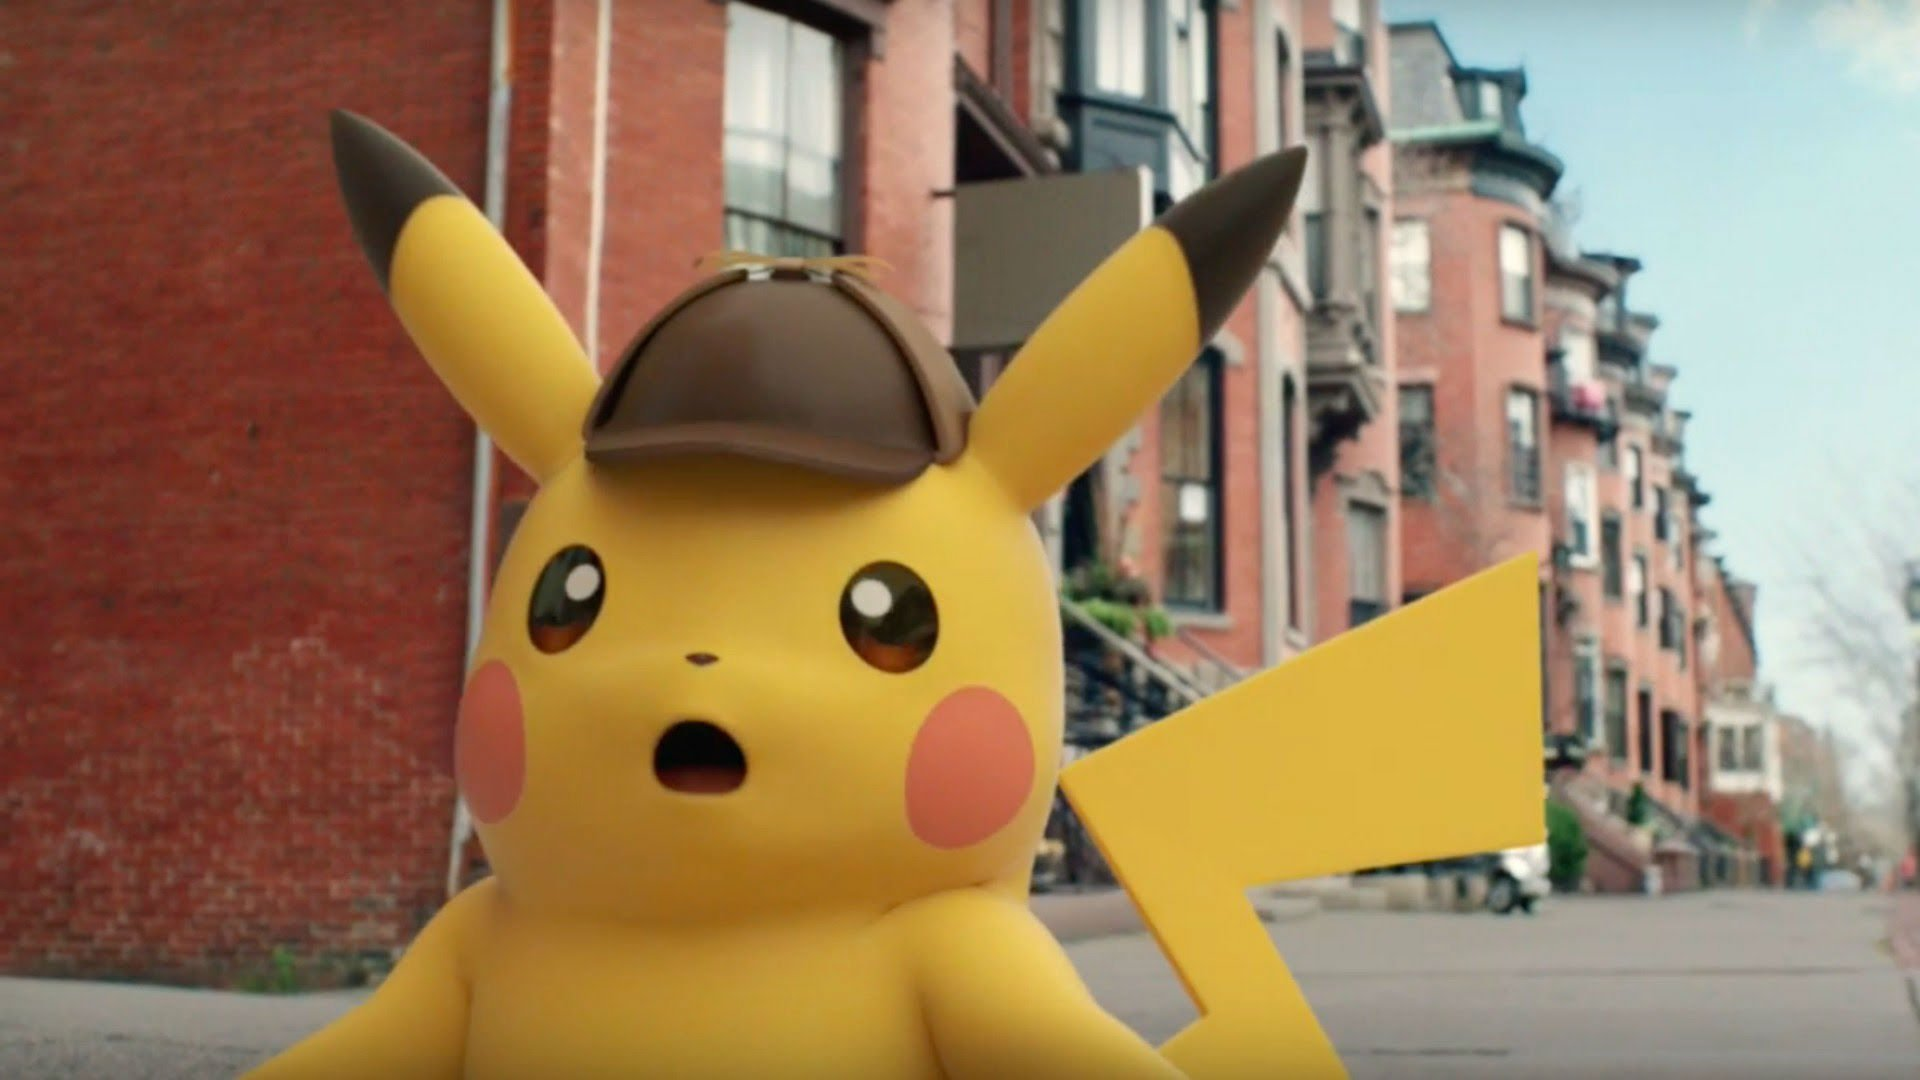 Ryan Reynolds cast as Pikachu in Detective Pikachu movie screenshot